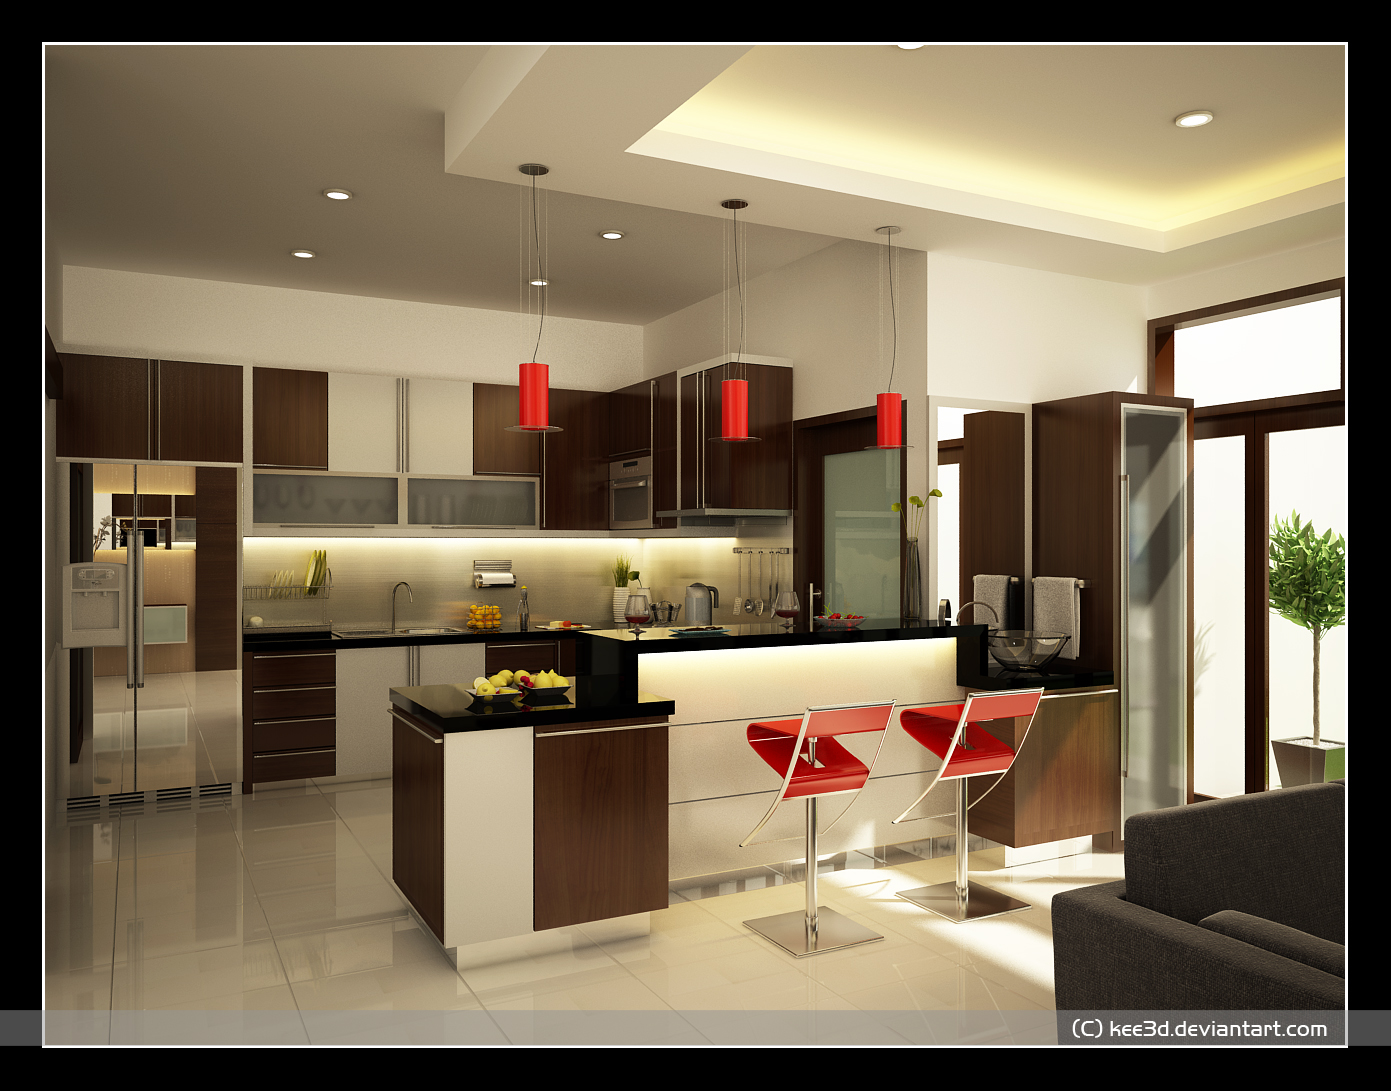 Kitchen design ideas for New kitchen remodel ideas